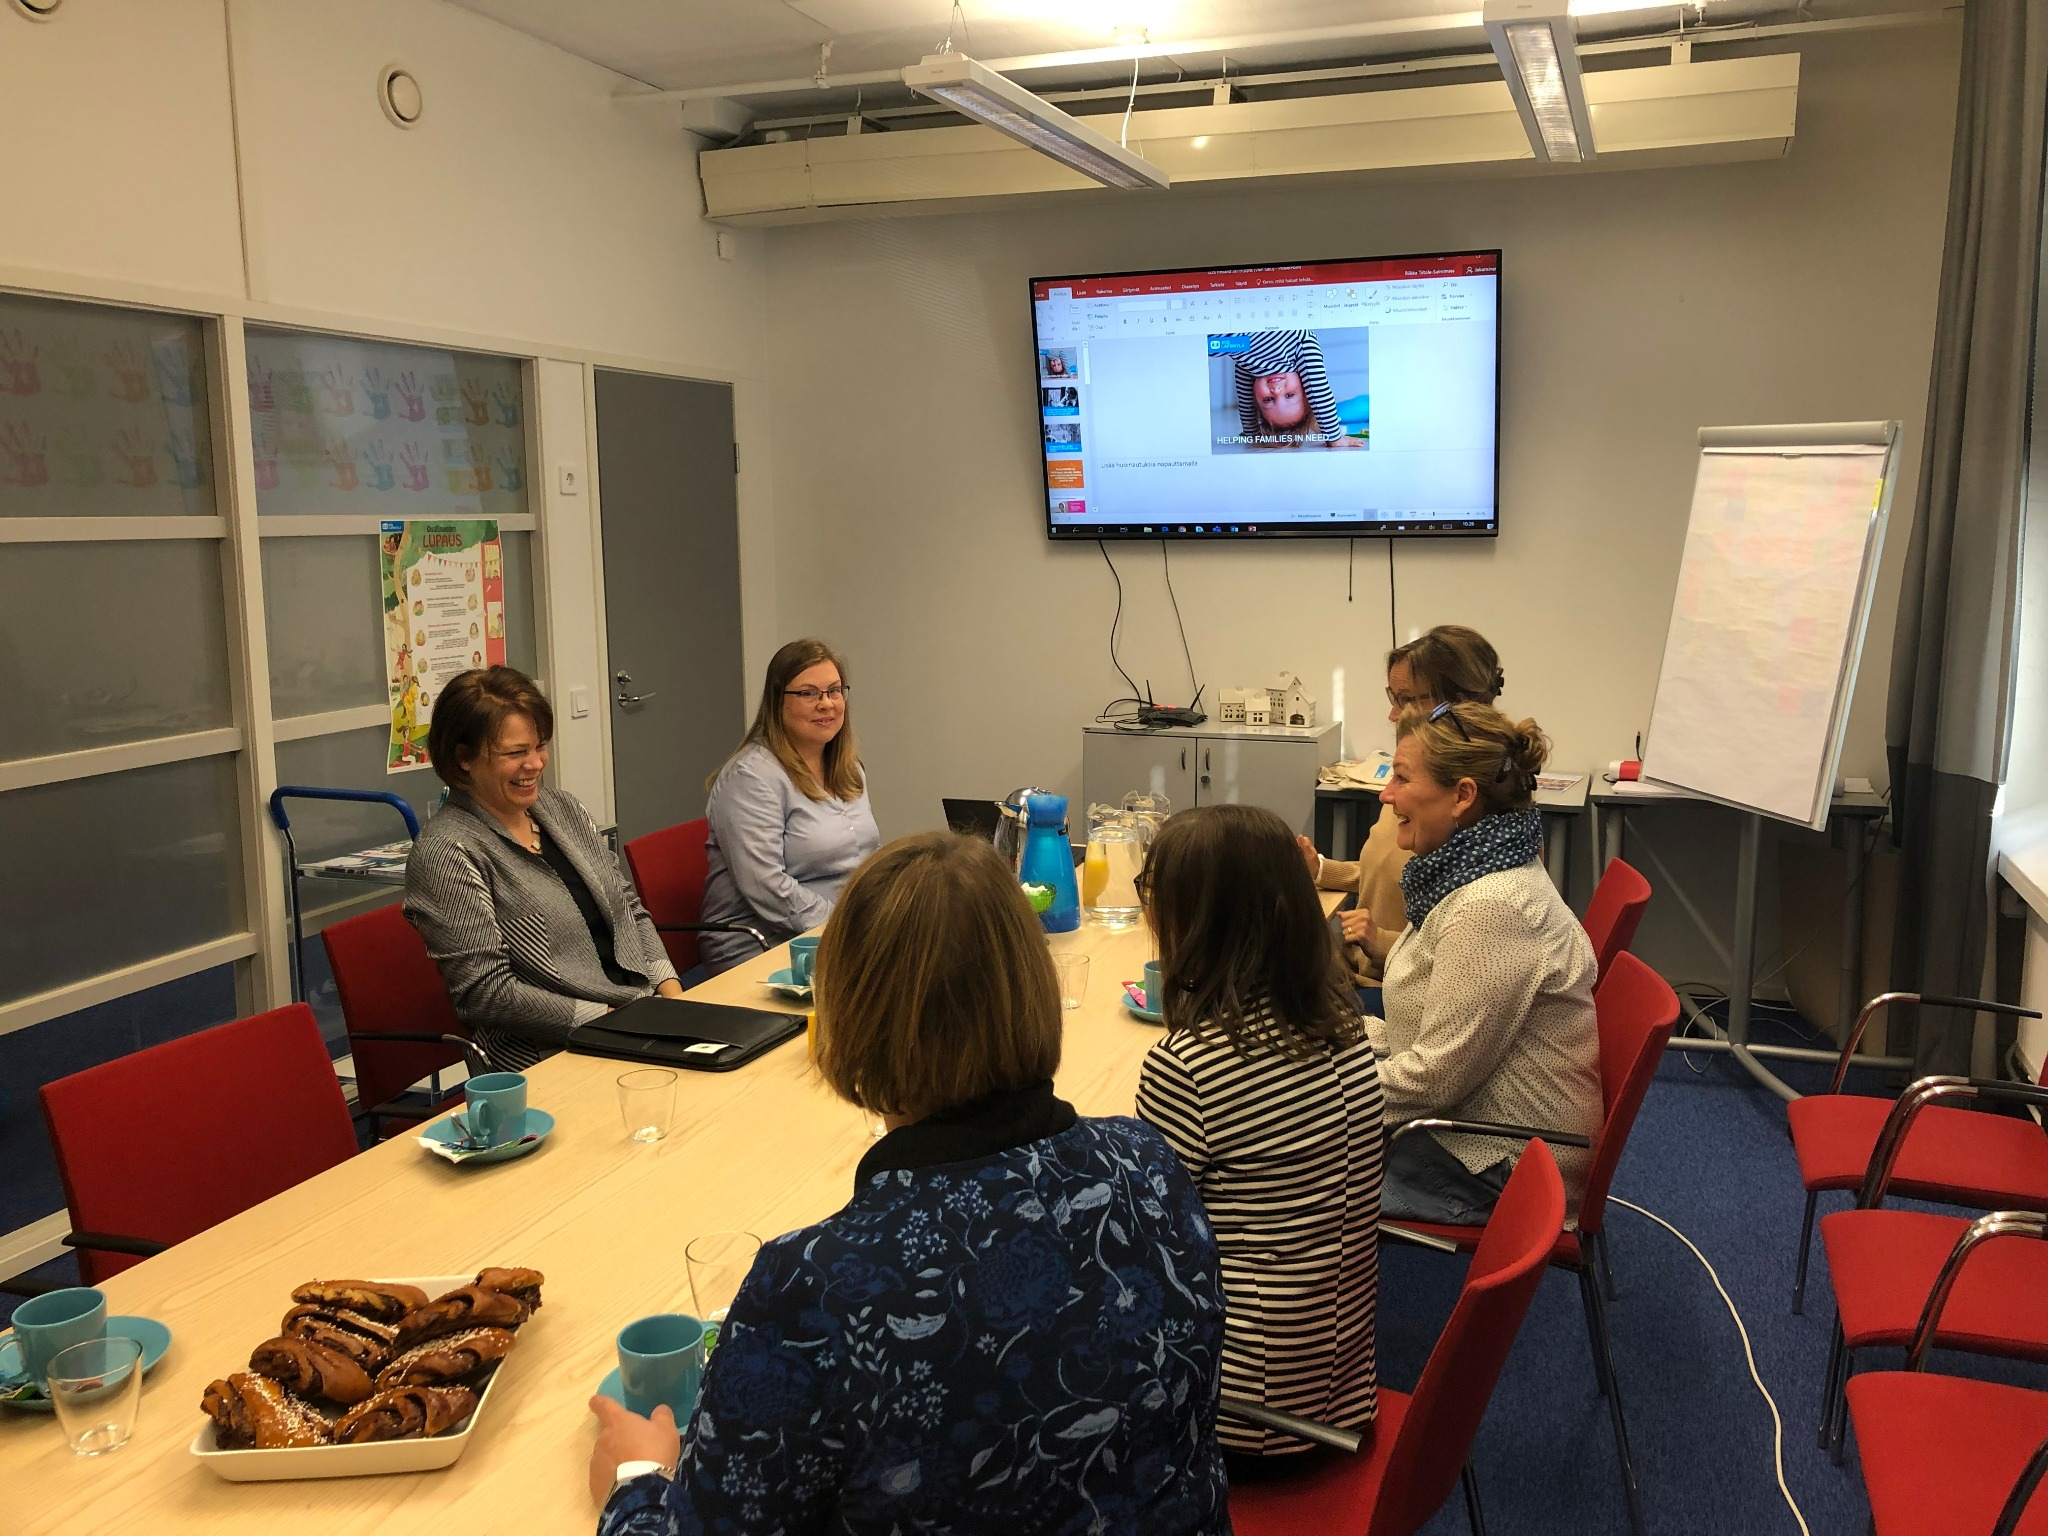 Sister Sharon Eubank of the Relief Society general presidency and two local Relief Society presidents meet with representatives of SOS-Lapsikylä to explore partnership opportunities in Helsinki, Finland, Friday, September 20, 2019.